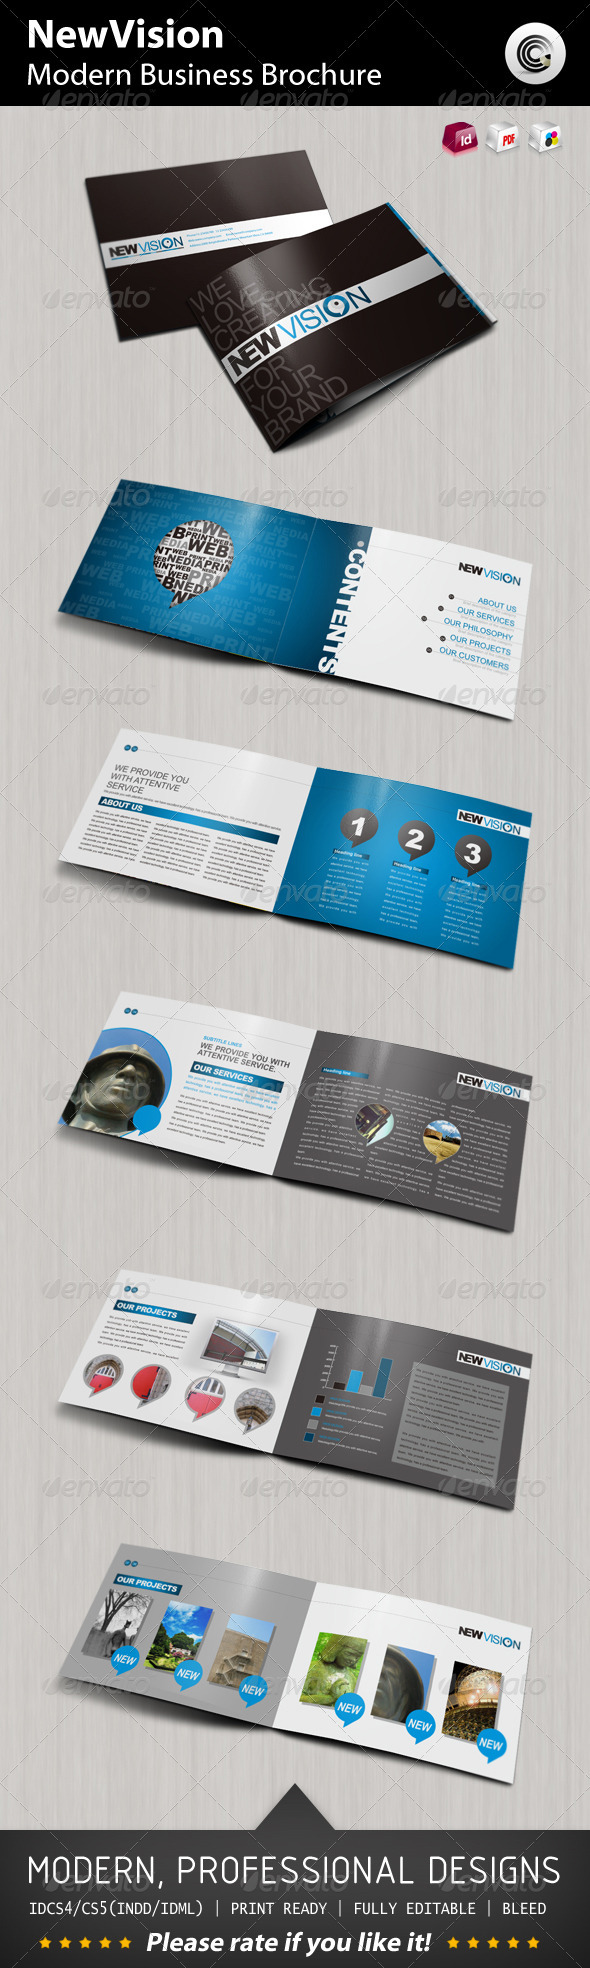 New Vision Modern Business Brochure - Brochures Print Templates